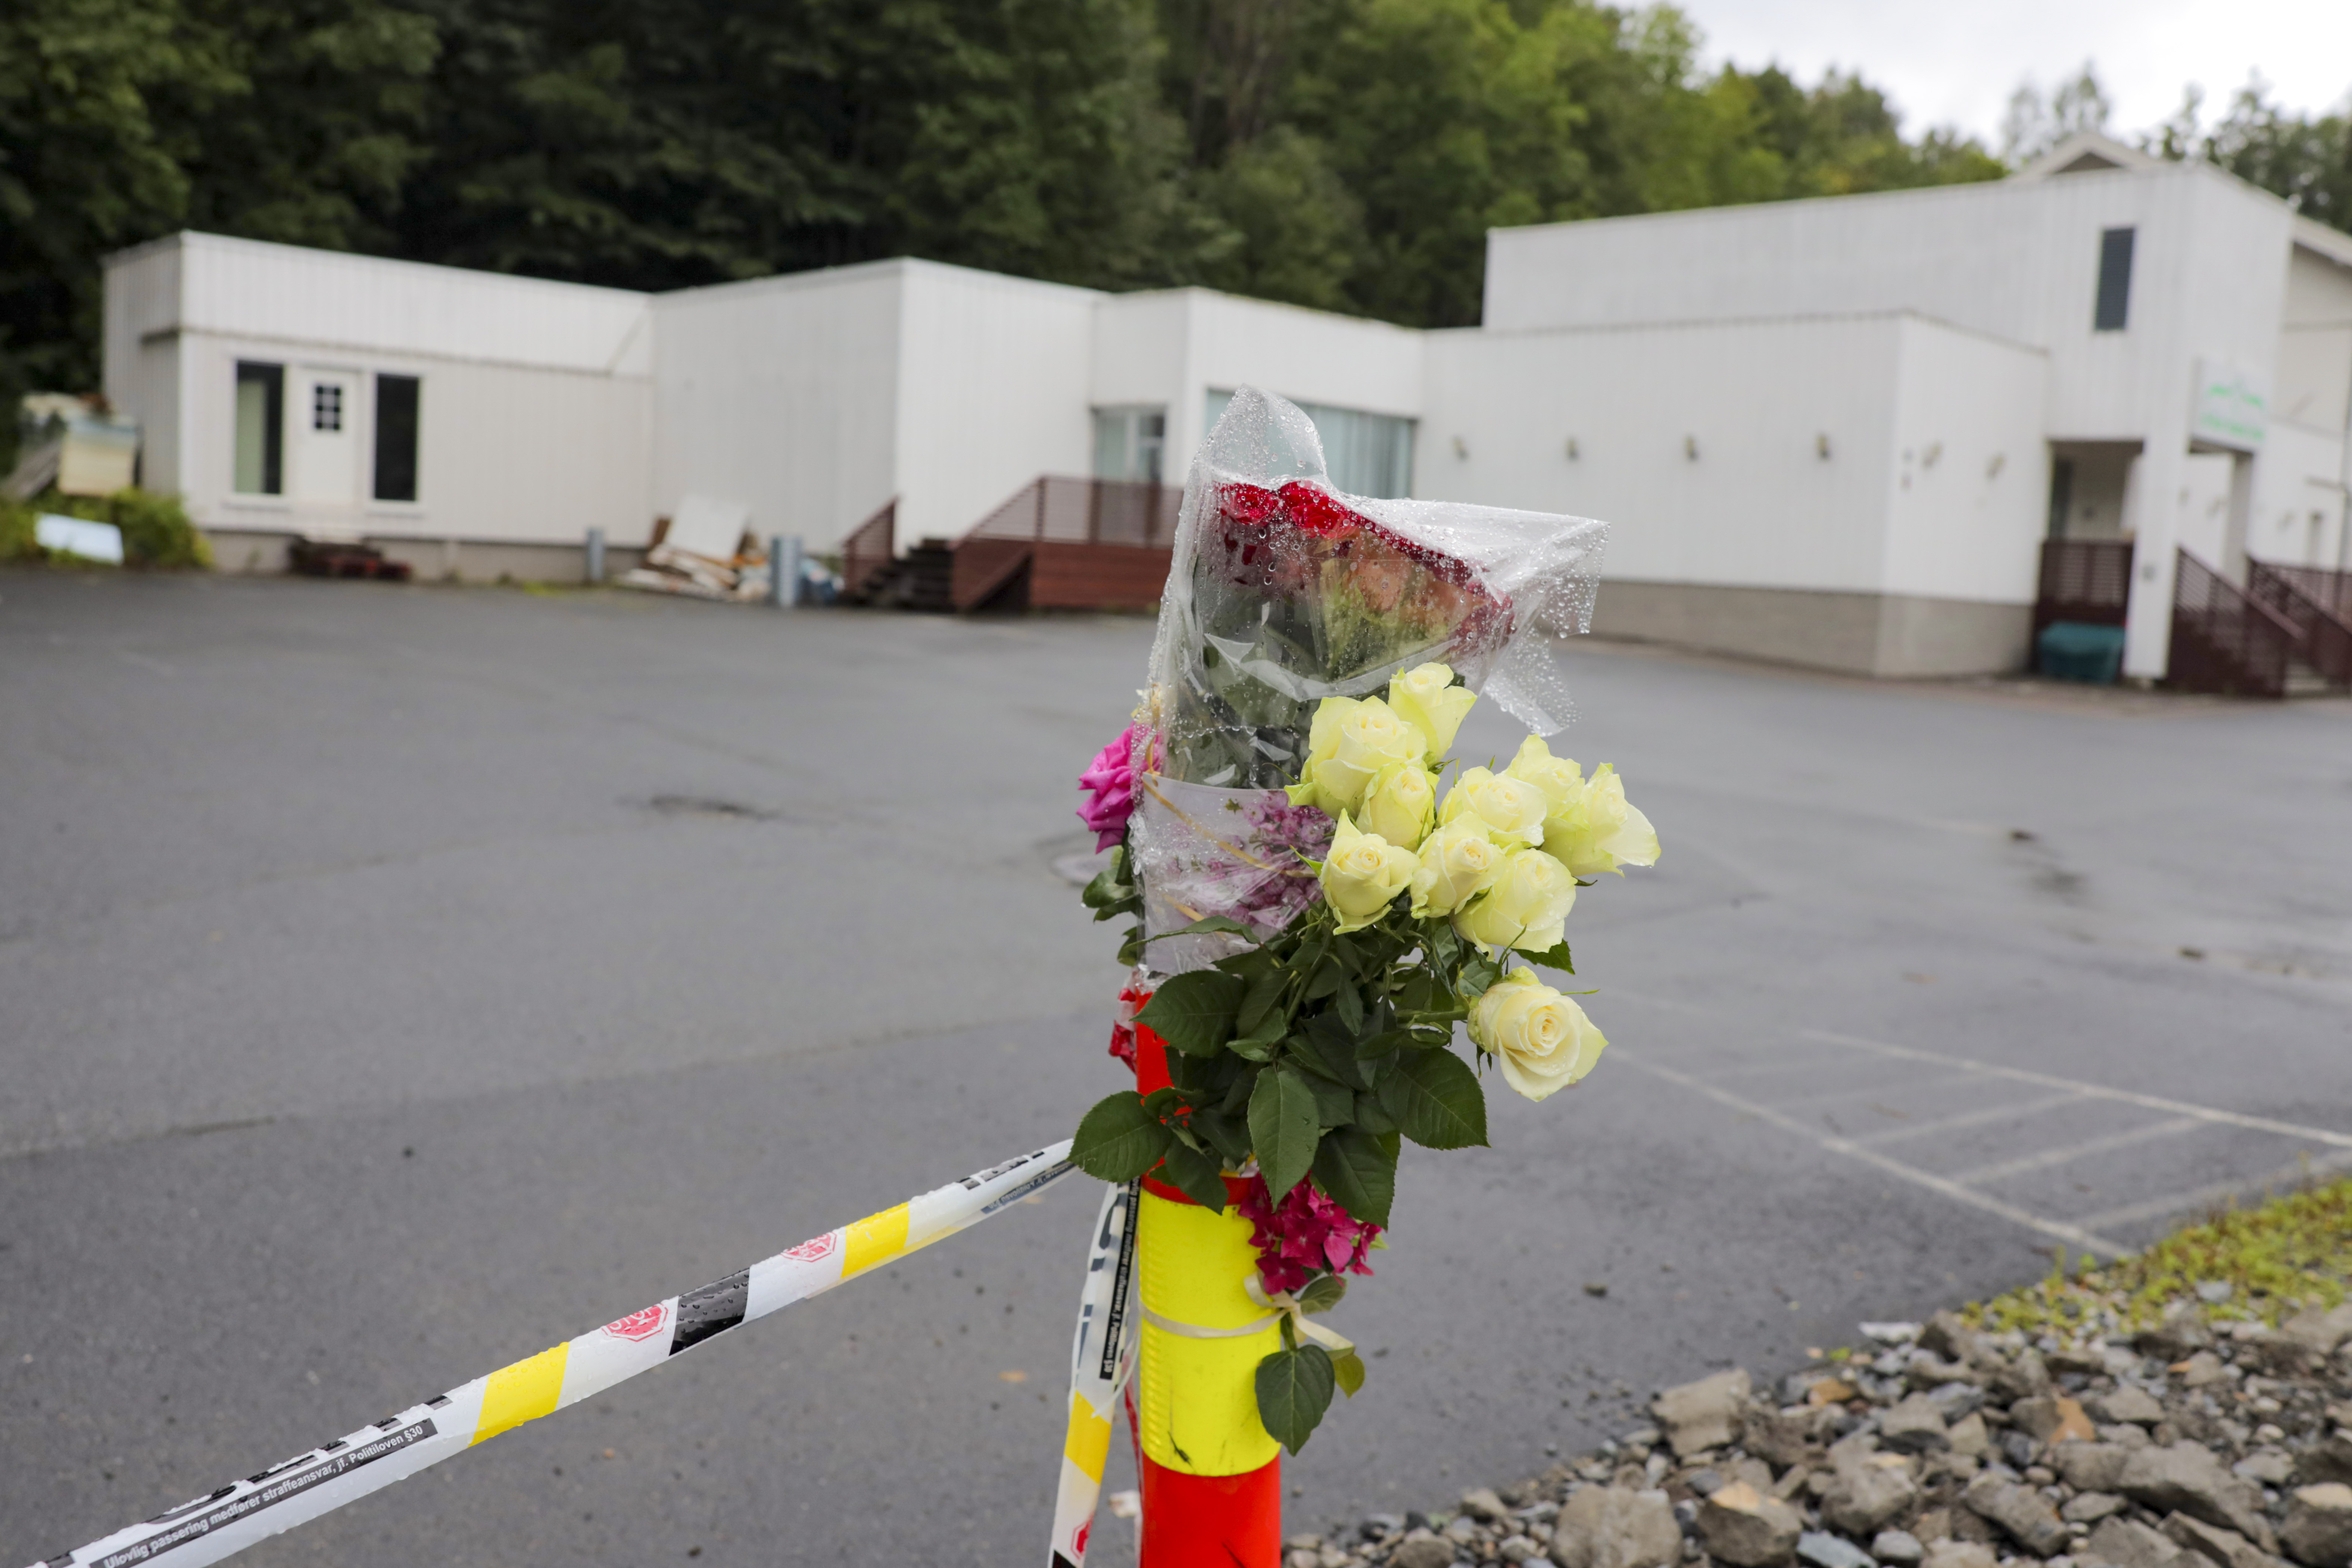 A Norwegian white nationalist tried to kill Muslims at a mosque